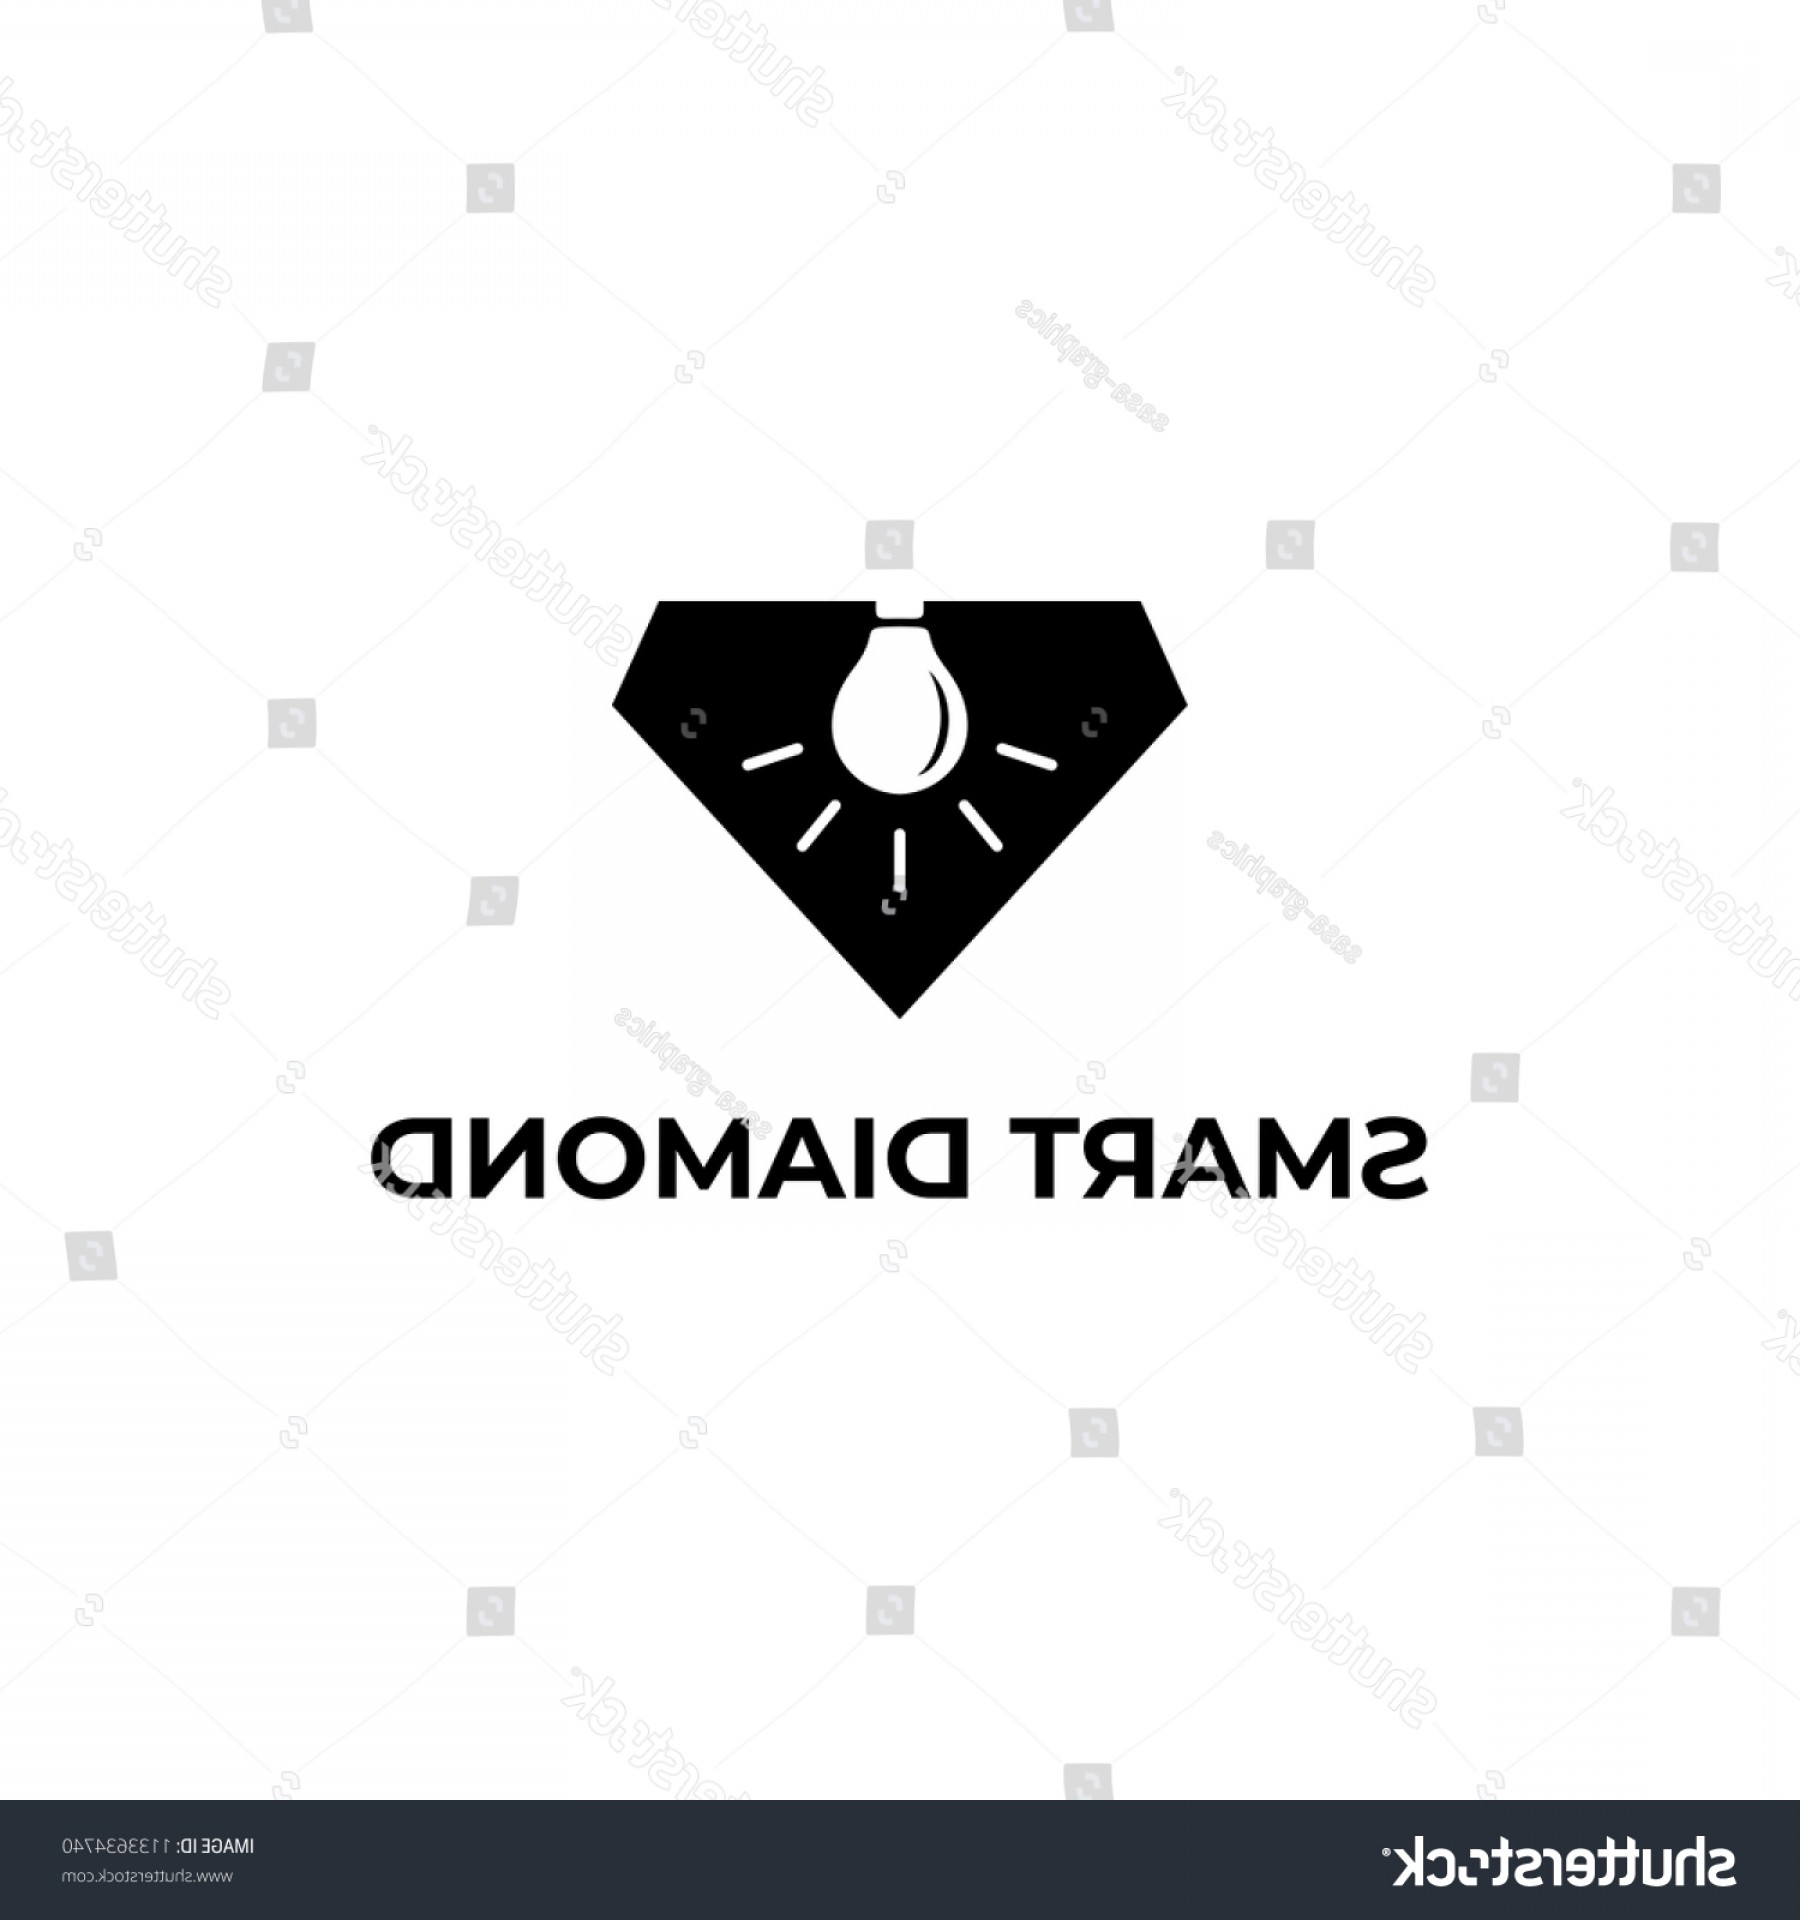 Jewelry Manufacturing Icon Vector: Inspiration Logo Clever Enterprise Innovation Jewelry